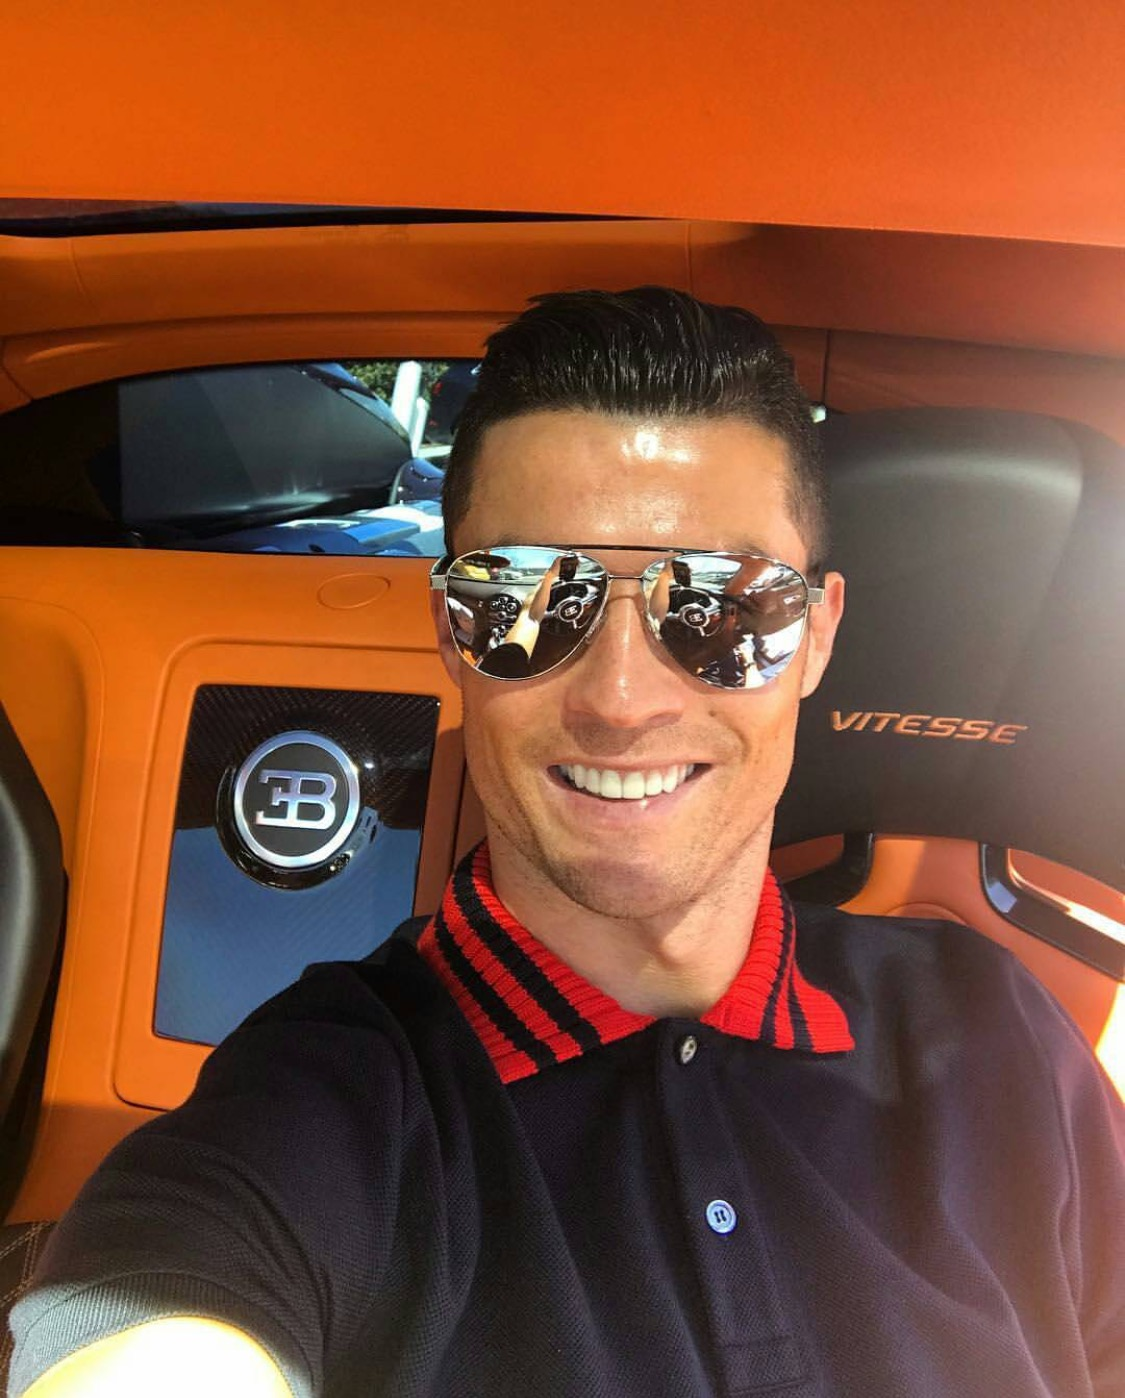 Cristiano Ronaldo Proves that people only care about you if you are famous